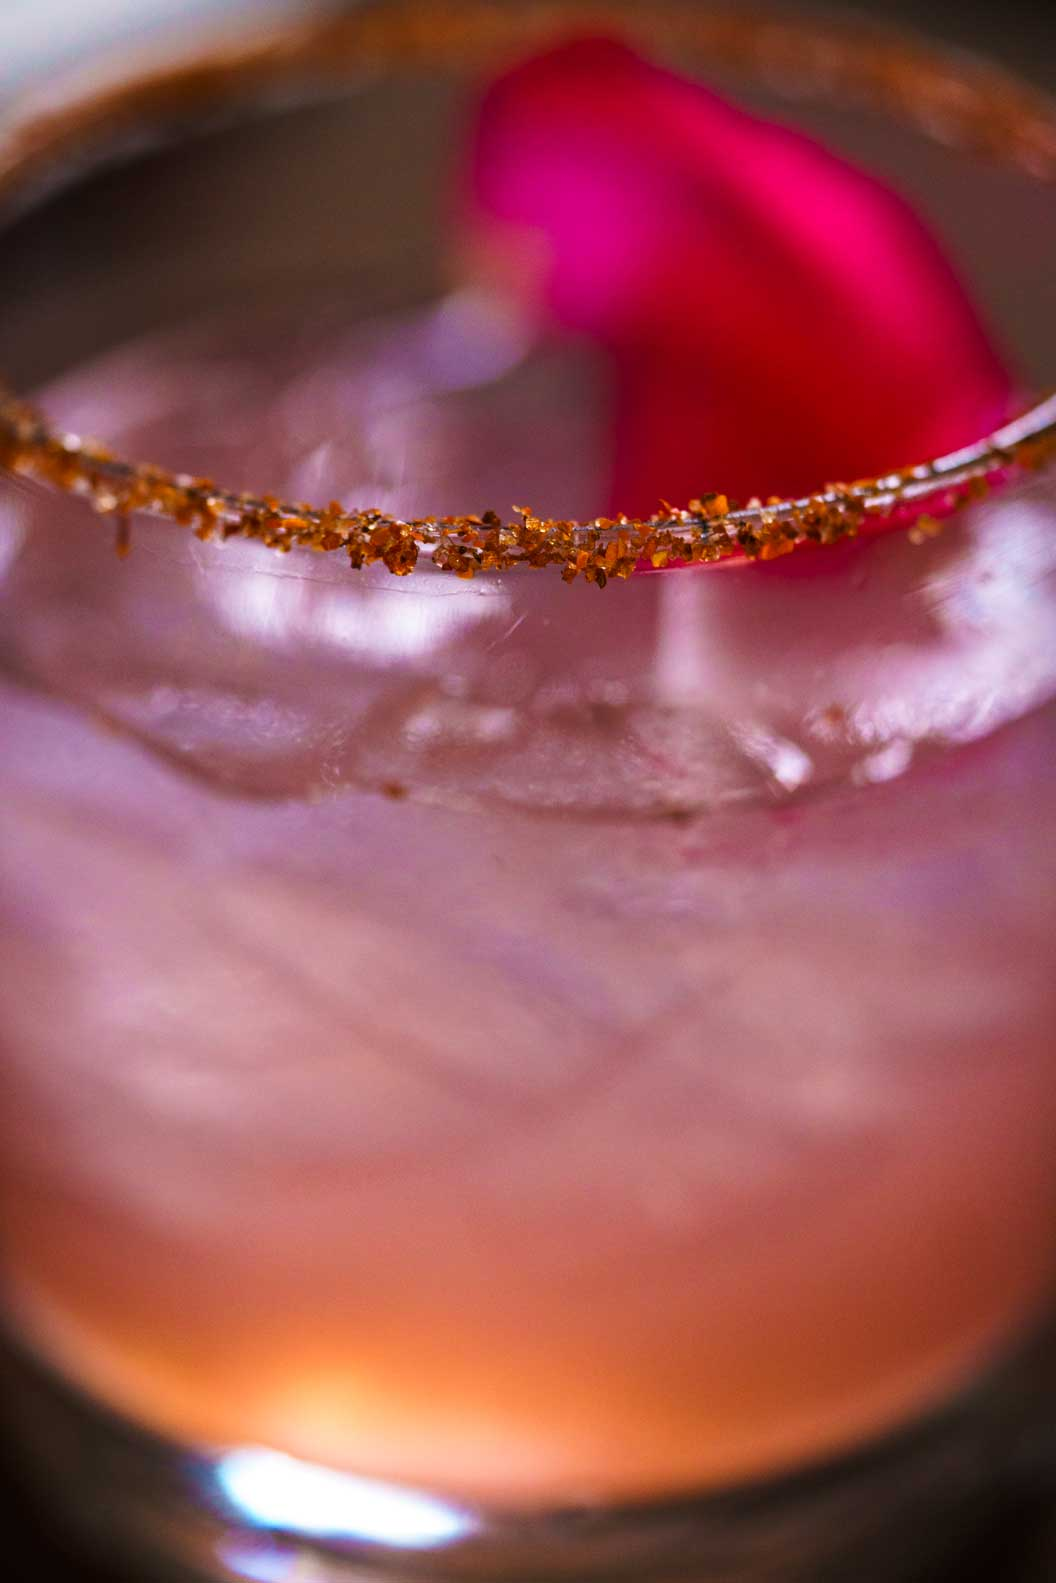 Pink Margarita Drink | Stories + Objects Global Travel Images